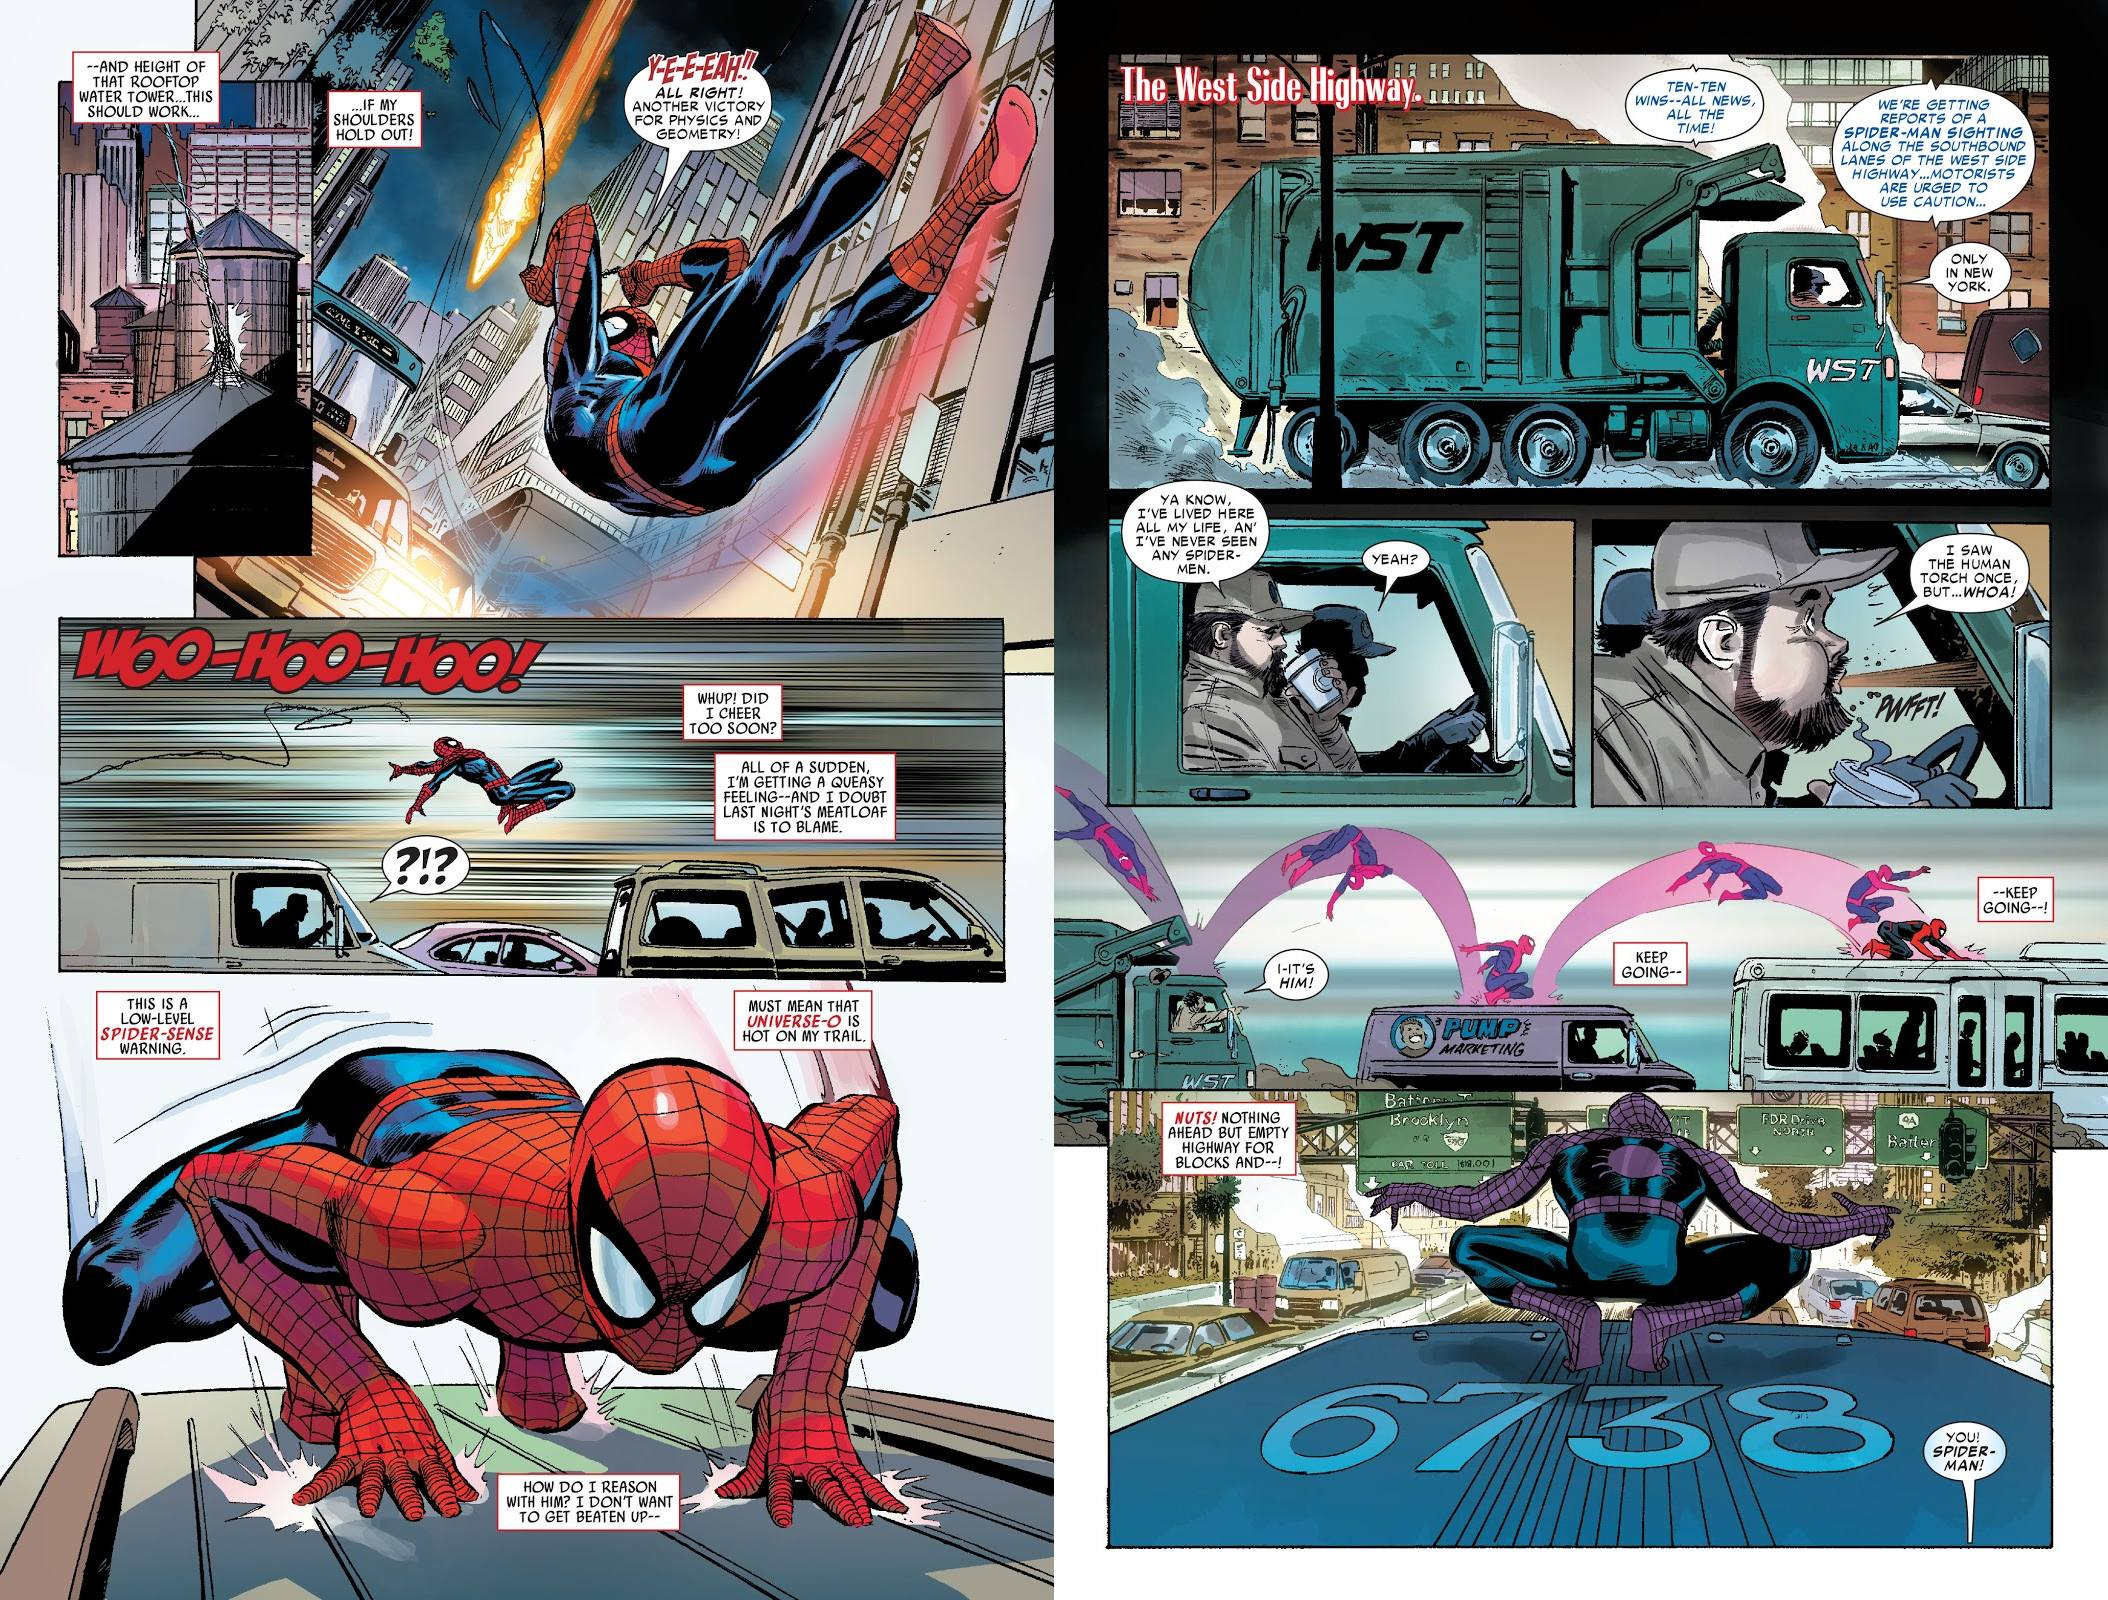 Amazing Spider-Man the Gauntlet V4 review